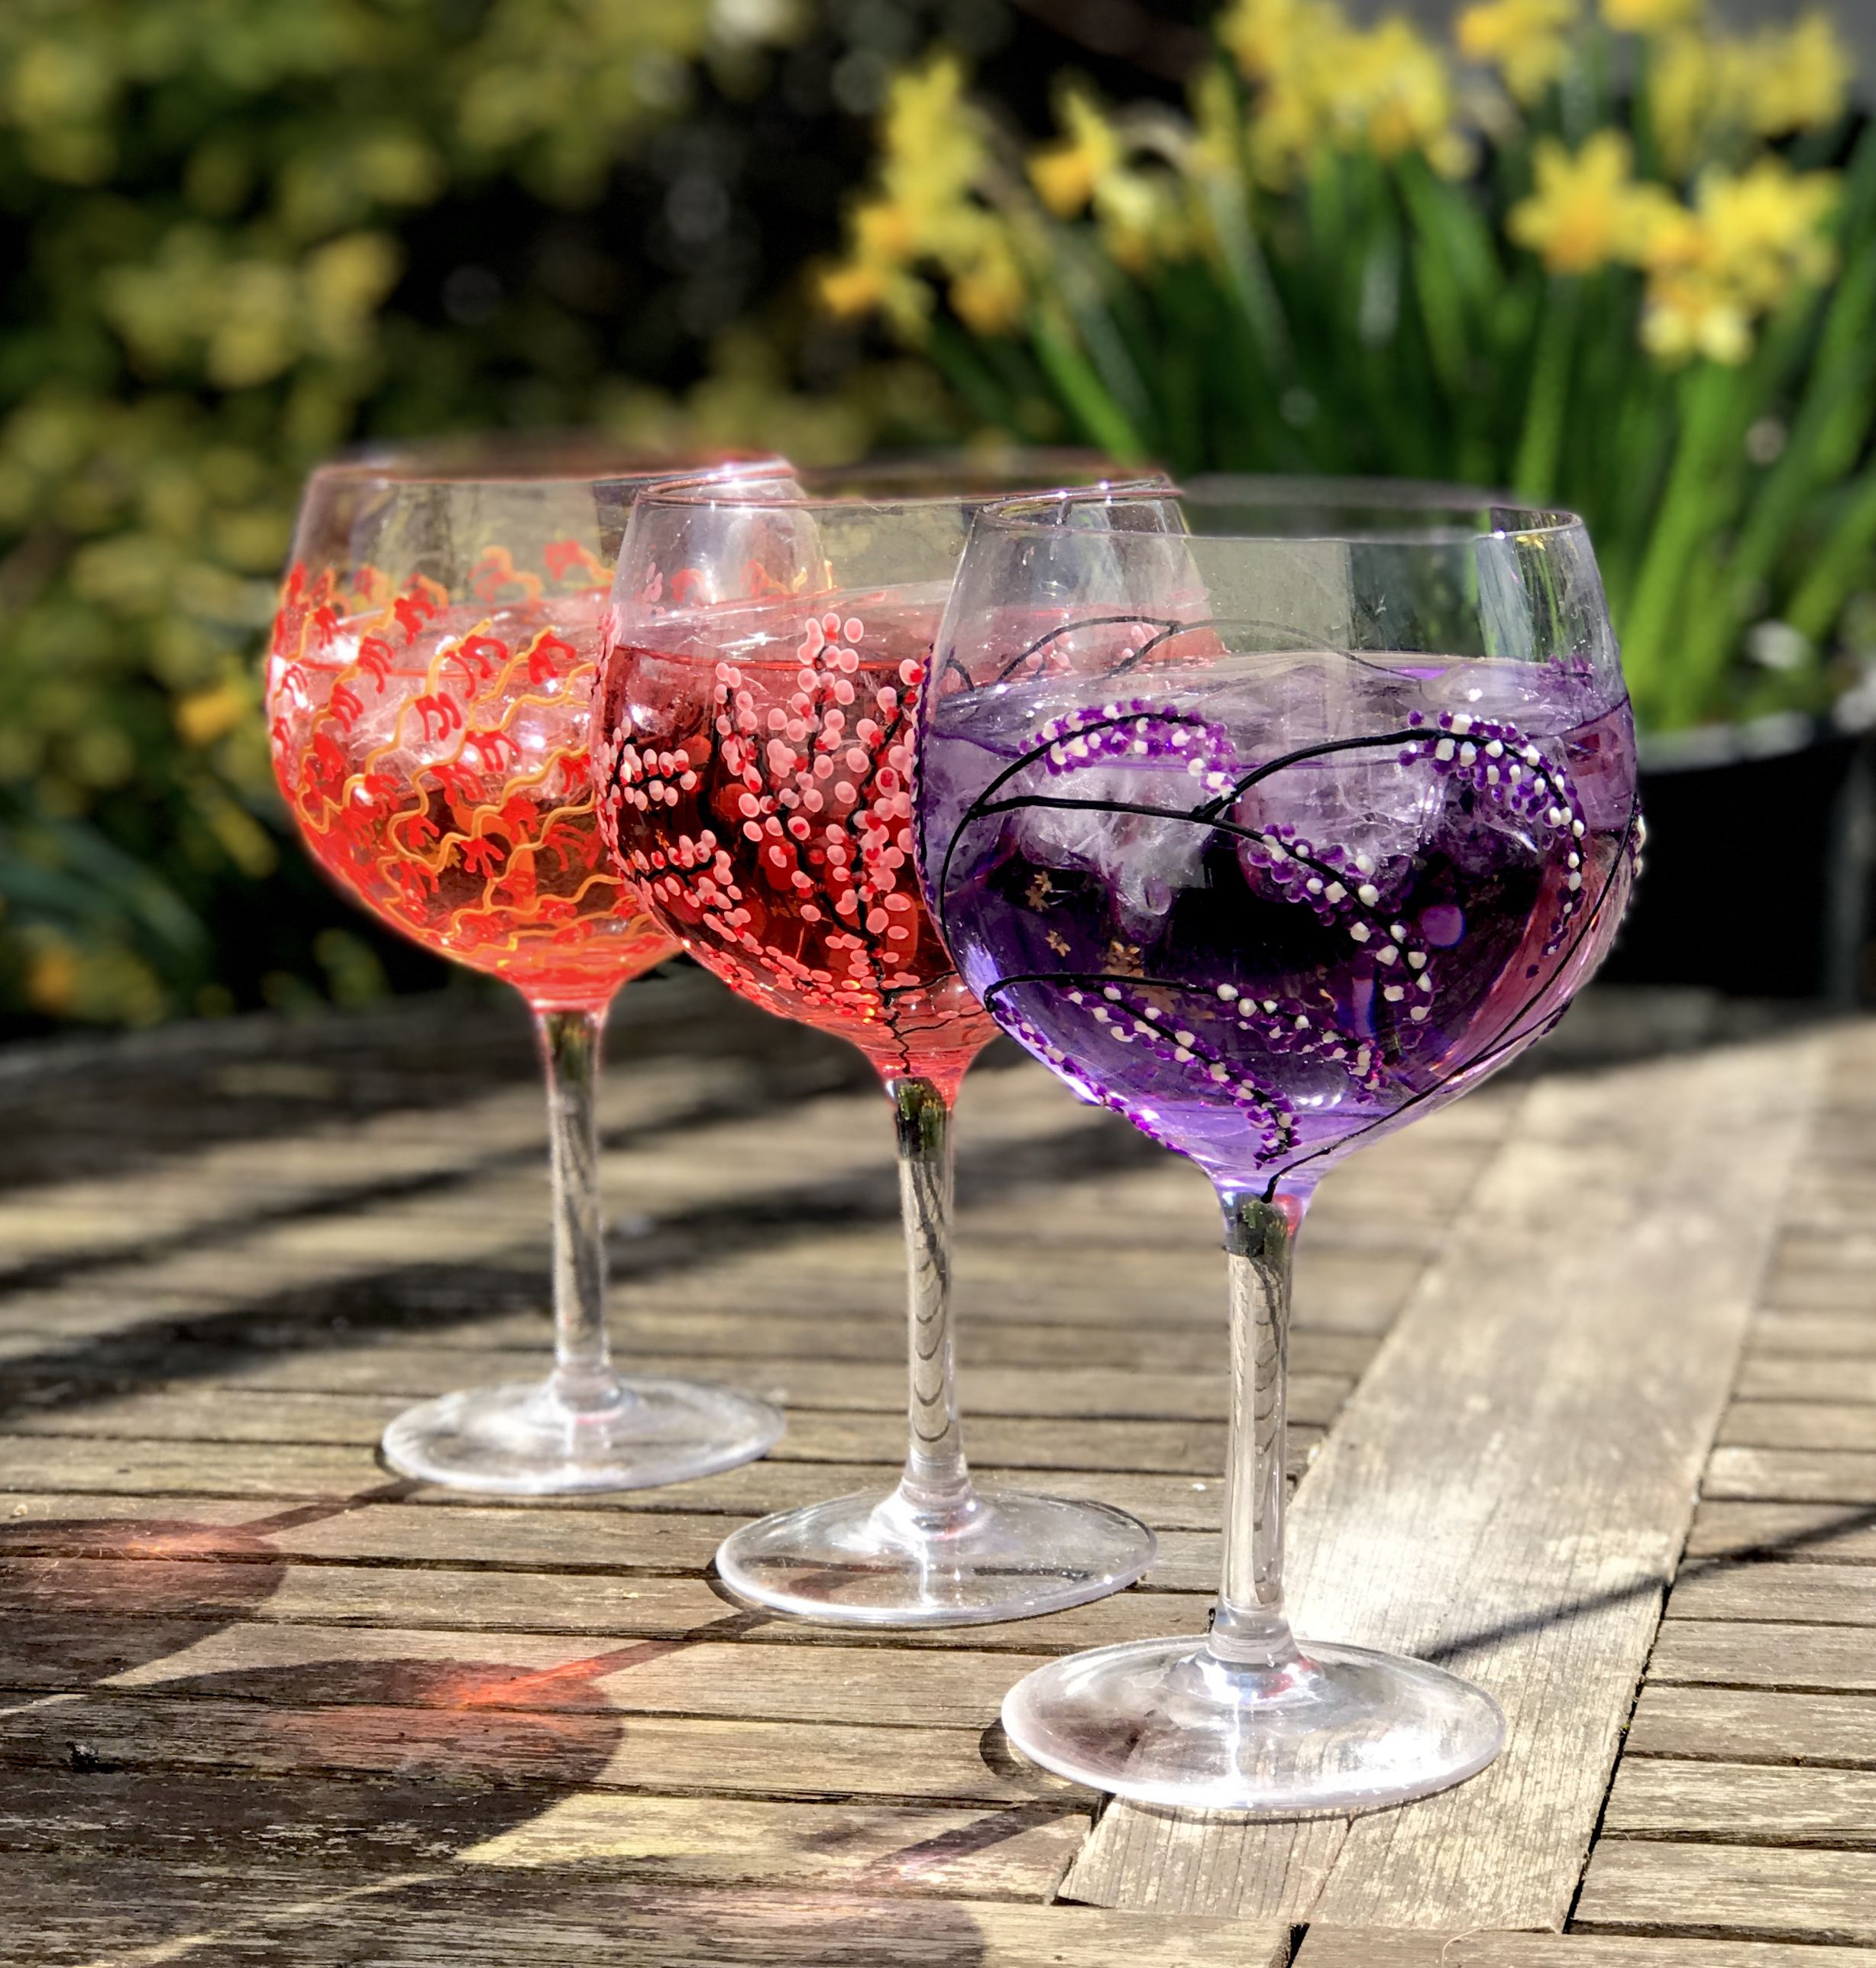 Check Out Our New Gin Glasses By Sunny By Sue Go To Our Website To See The Full Range Joedaviesgiftware Ginglasses Gla Glass Collection Glass Gin Glasses